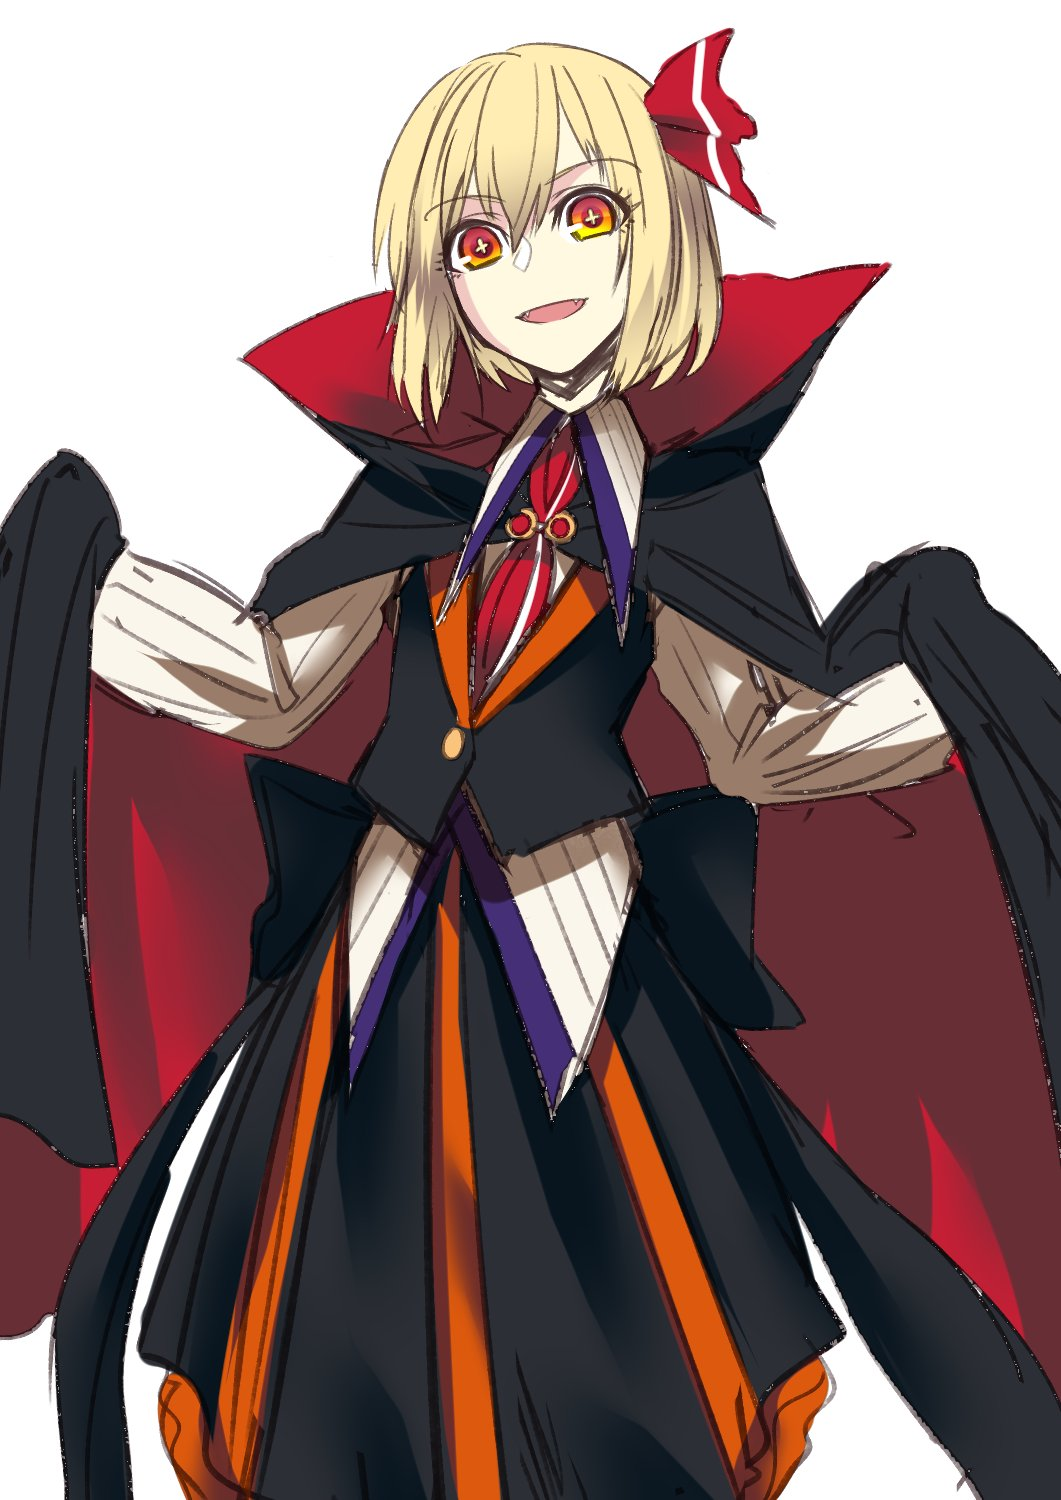 +_+ 1girl :d black_cape black_skirt black_vest cape gradient_eyes hair_ornament highres long_sleeves looking_at_viewer medium_hair multicolored multicolored_eyes necktie open_mouth red_eyes red_neckwear rumia shirt shukusuri simple_background skirt smile solo standing touhou two-sided_cape two-sided_fabric vest white_background white_shirt